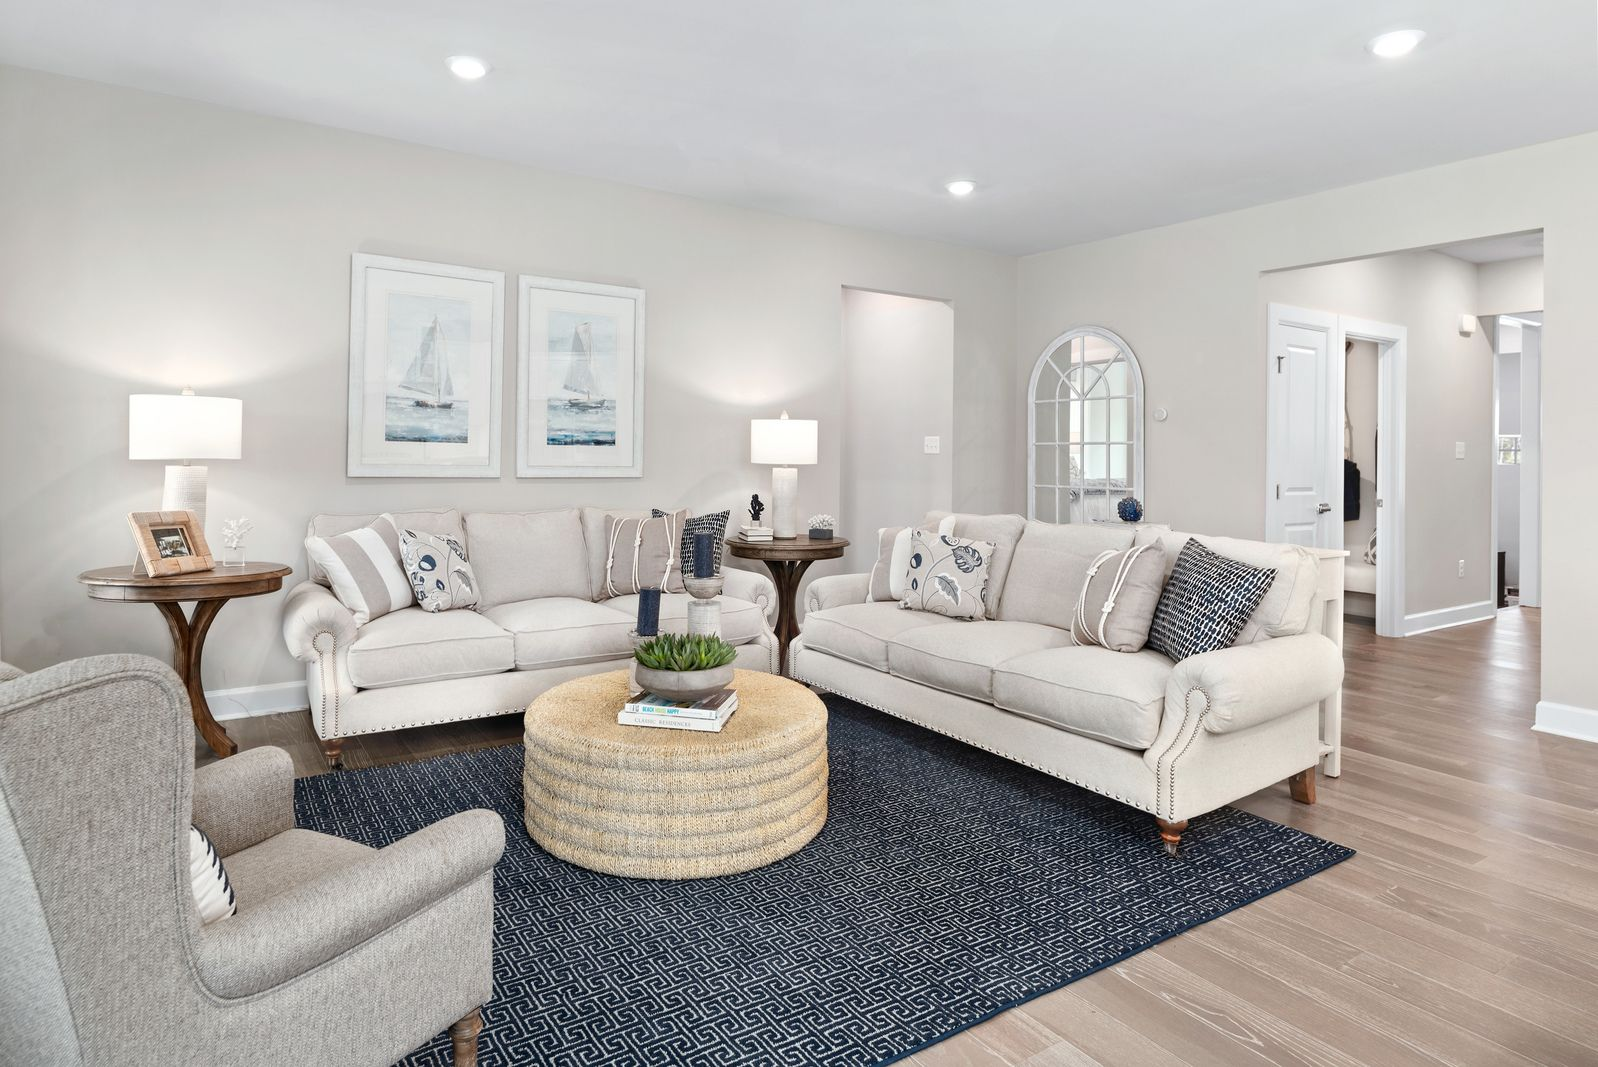 Living Area featured in the Stapleton Duplex By HeartlandHomes in Pittsburgh, PA